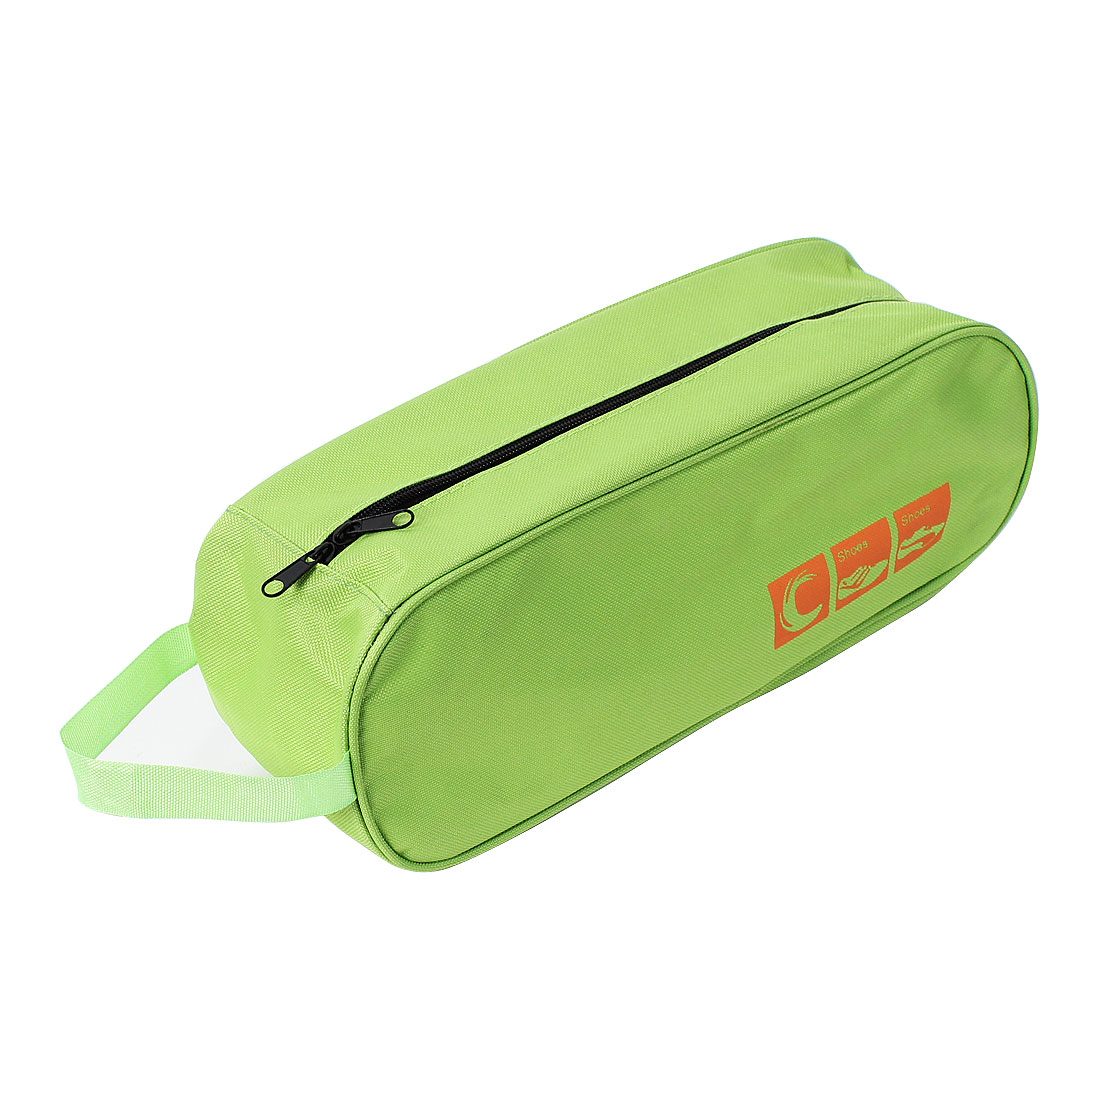 Nylon Zipper Closure Design Travel Storage Shoe Tote Dust Bag Case Green